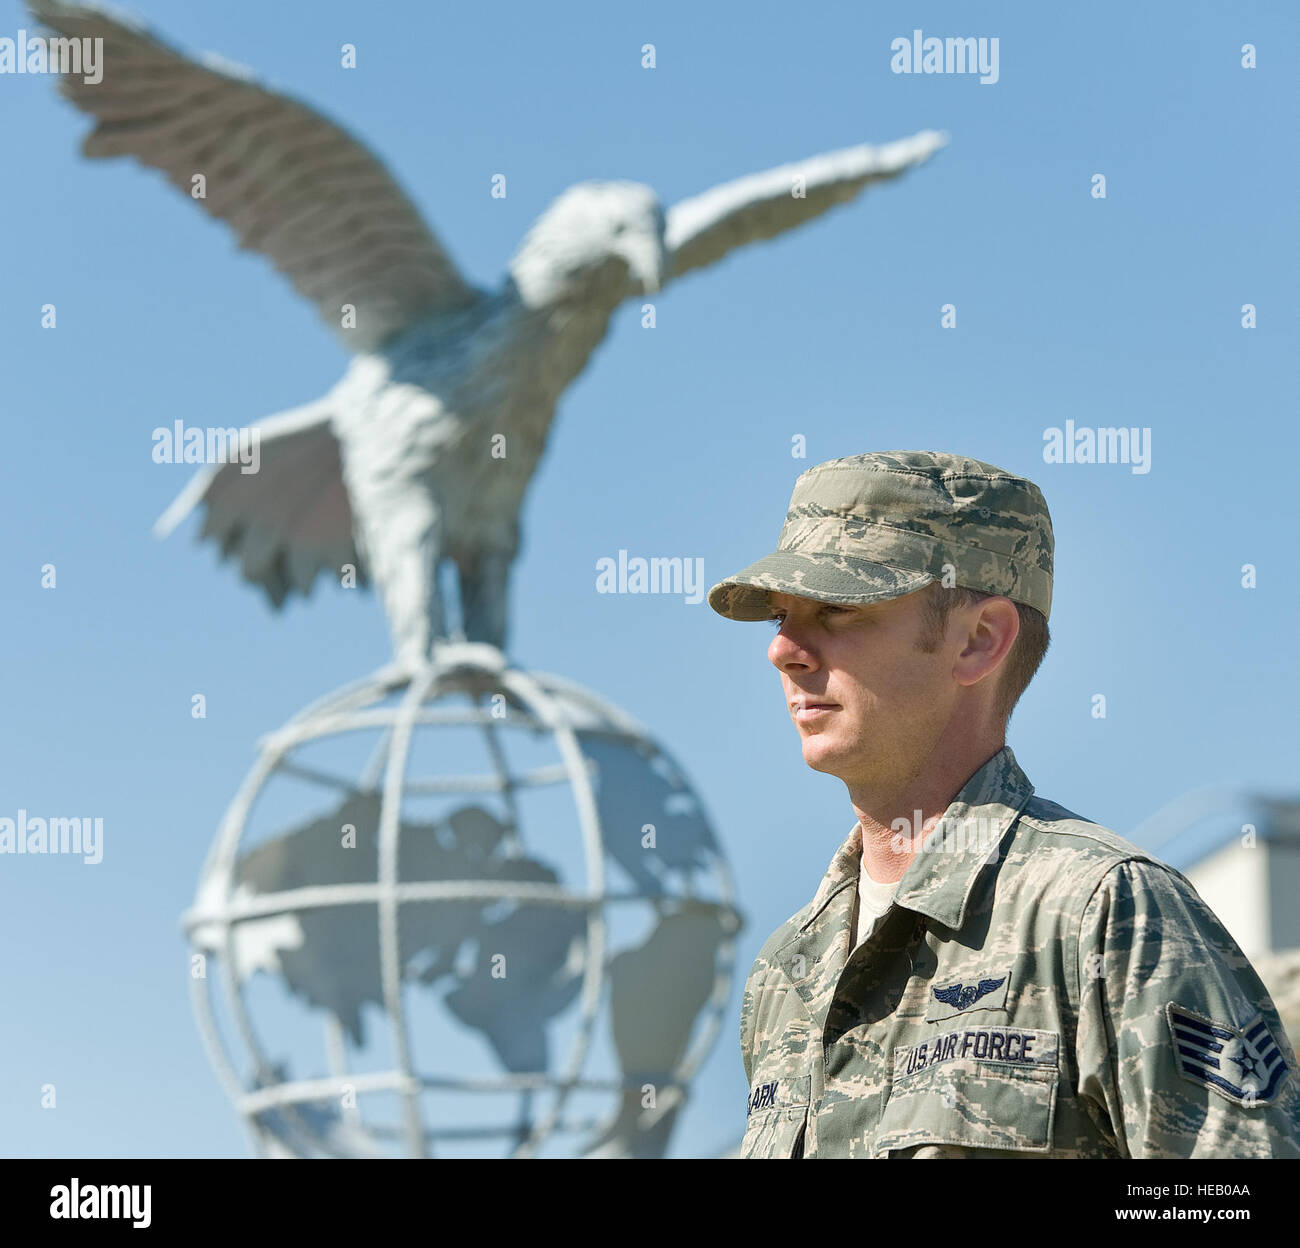 Staff Sgt. Matthew Clark, a loadmaster with the 3rd Airlift Squadron, stands at parade rest during the prisoner - Stock Image